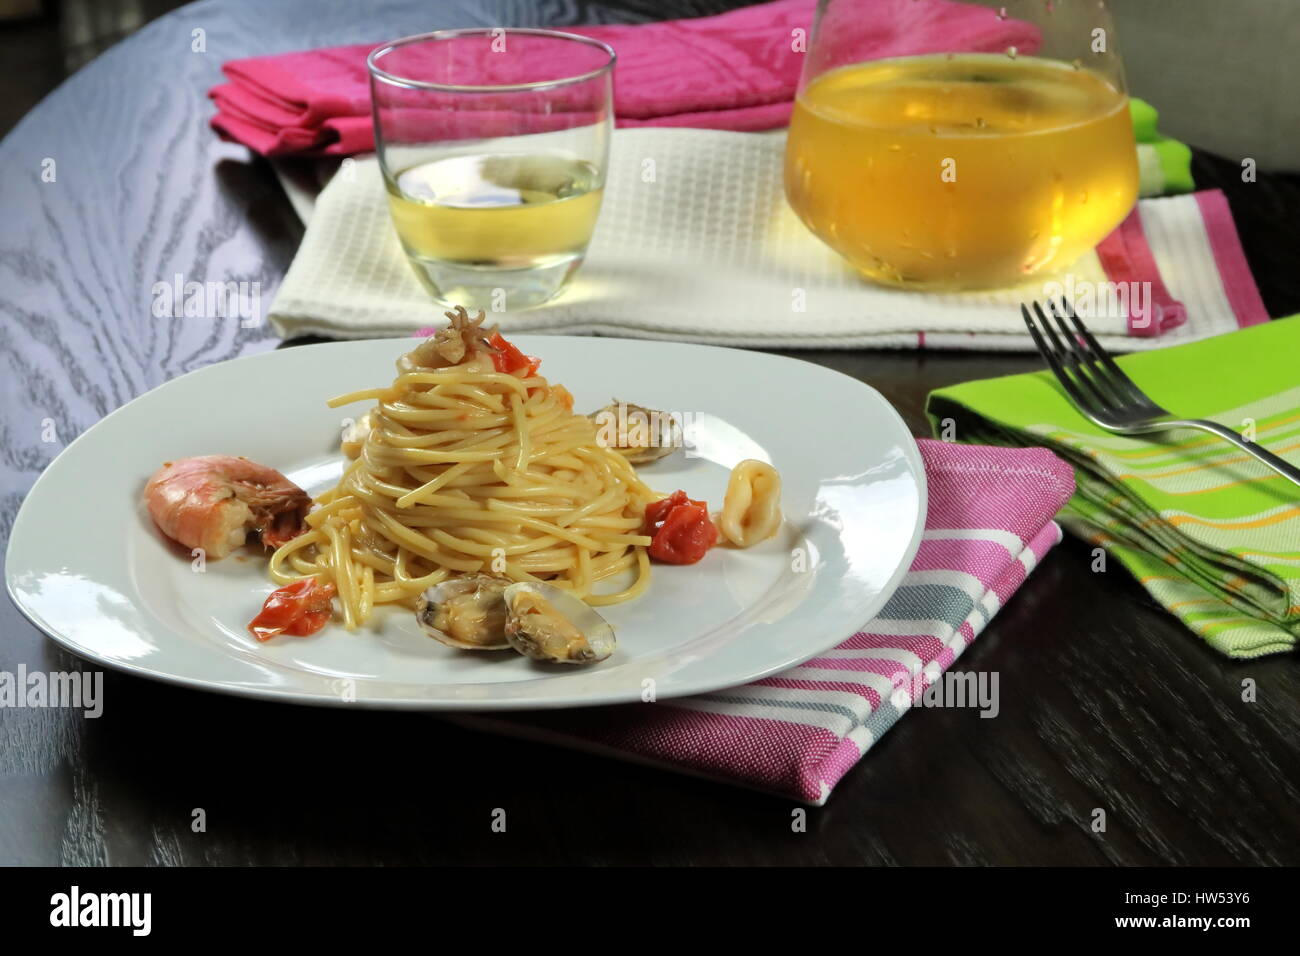 seafood pasta in white dish on colorful kitchen cloths and cool